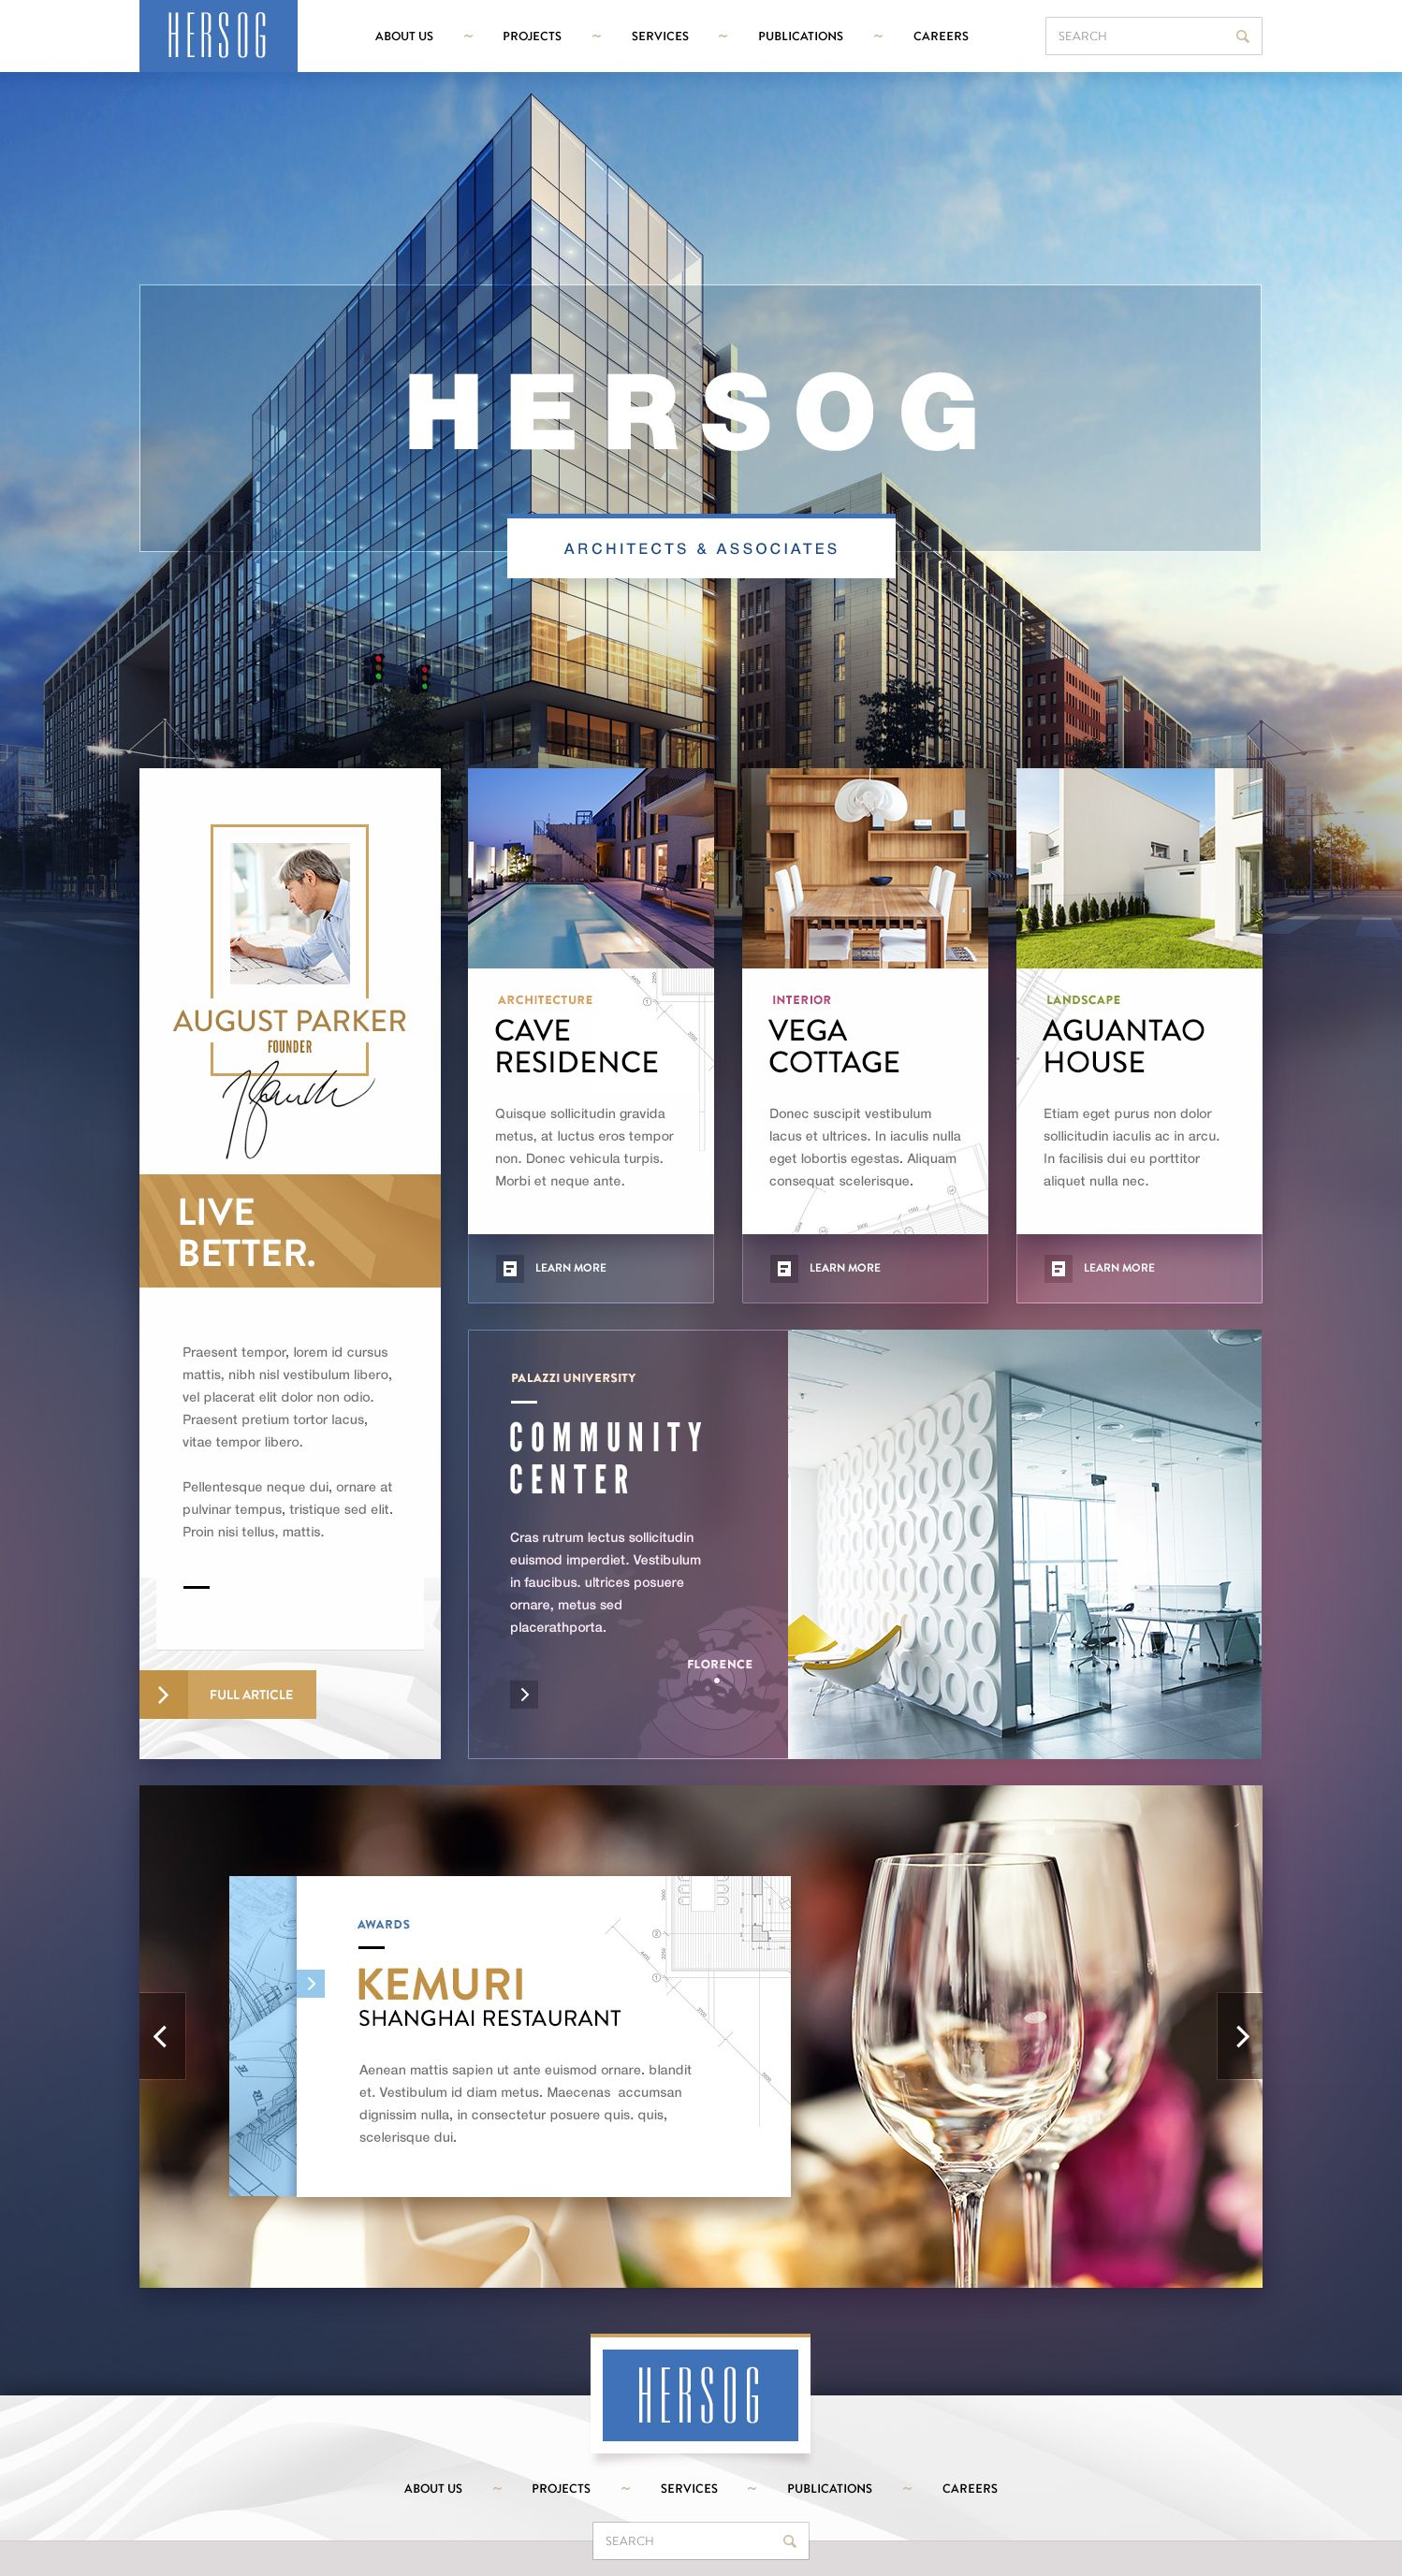 Cool #web #design - nice use of photographic background and overlaid boxes